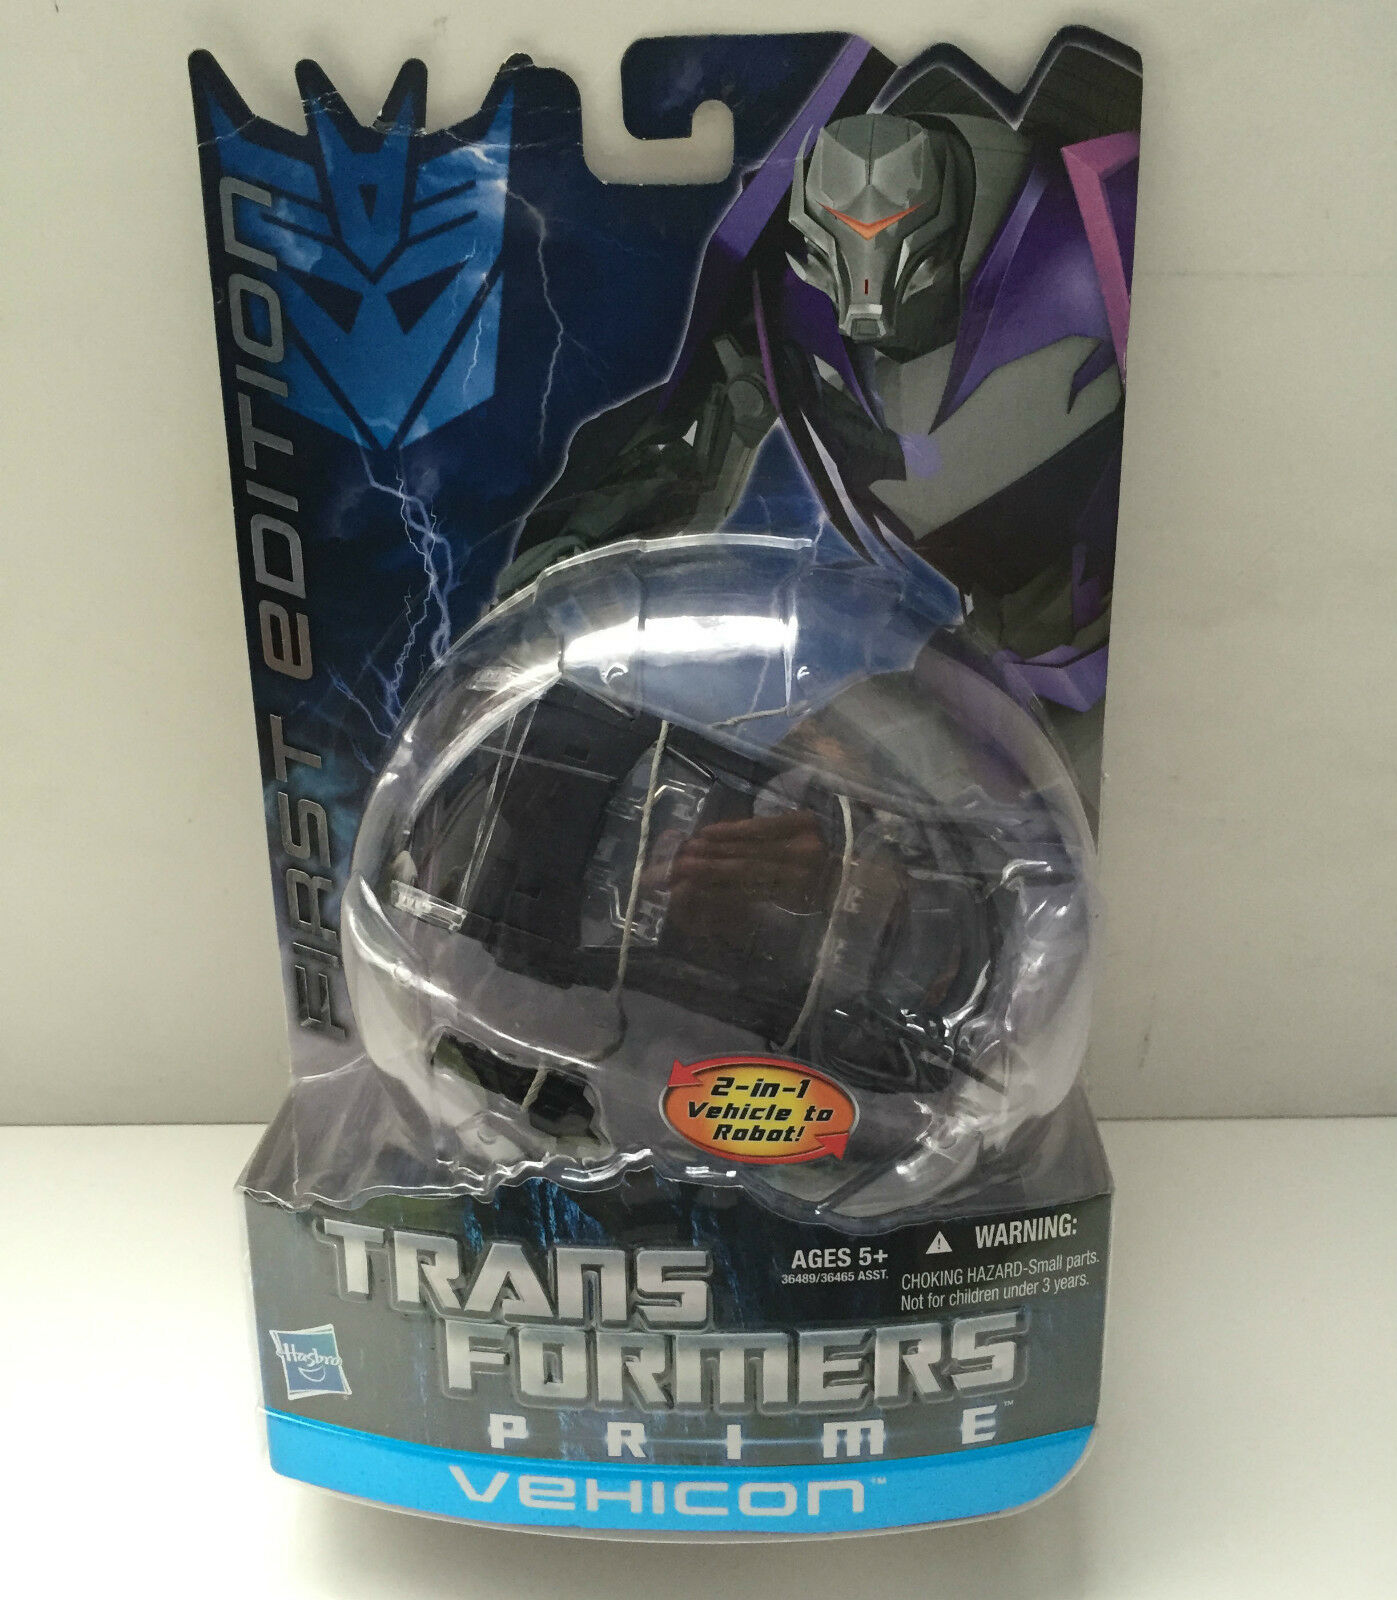 Transformers Prime Hasbro First Edition Deluxe Vehicon